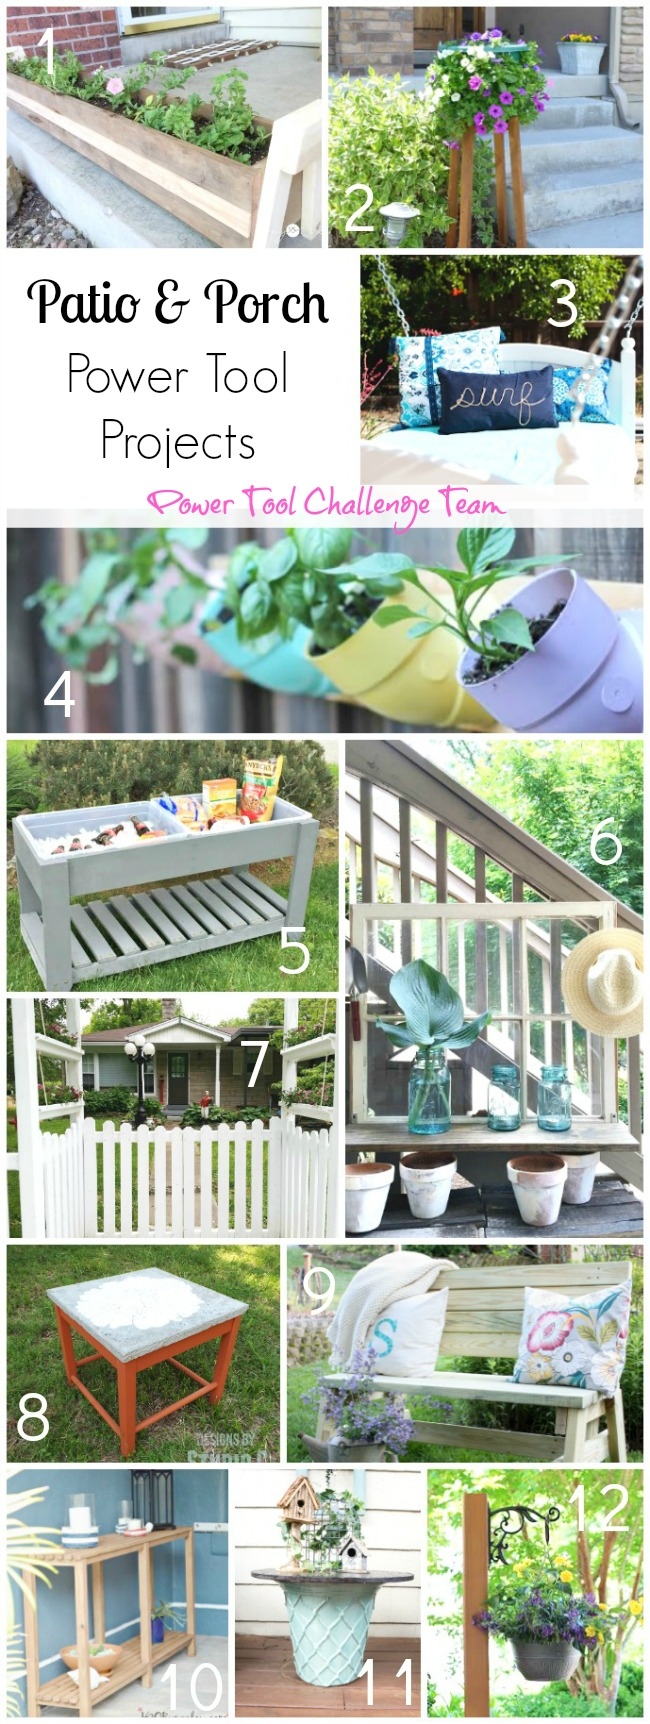 Patio and Porch Power Tool Projects from The Power Tool Challenge Team